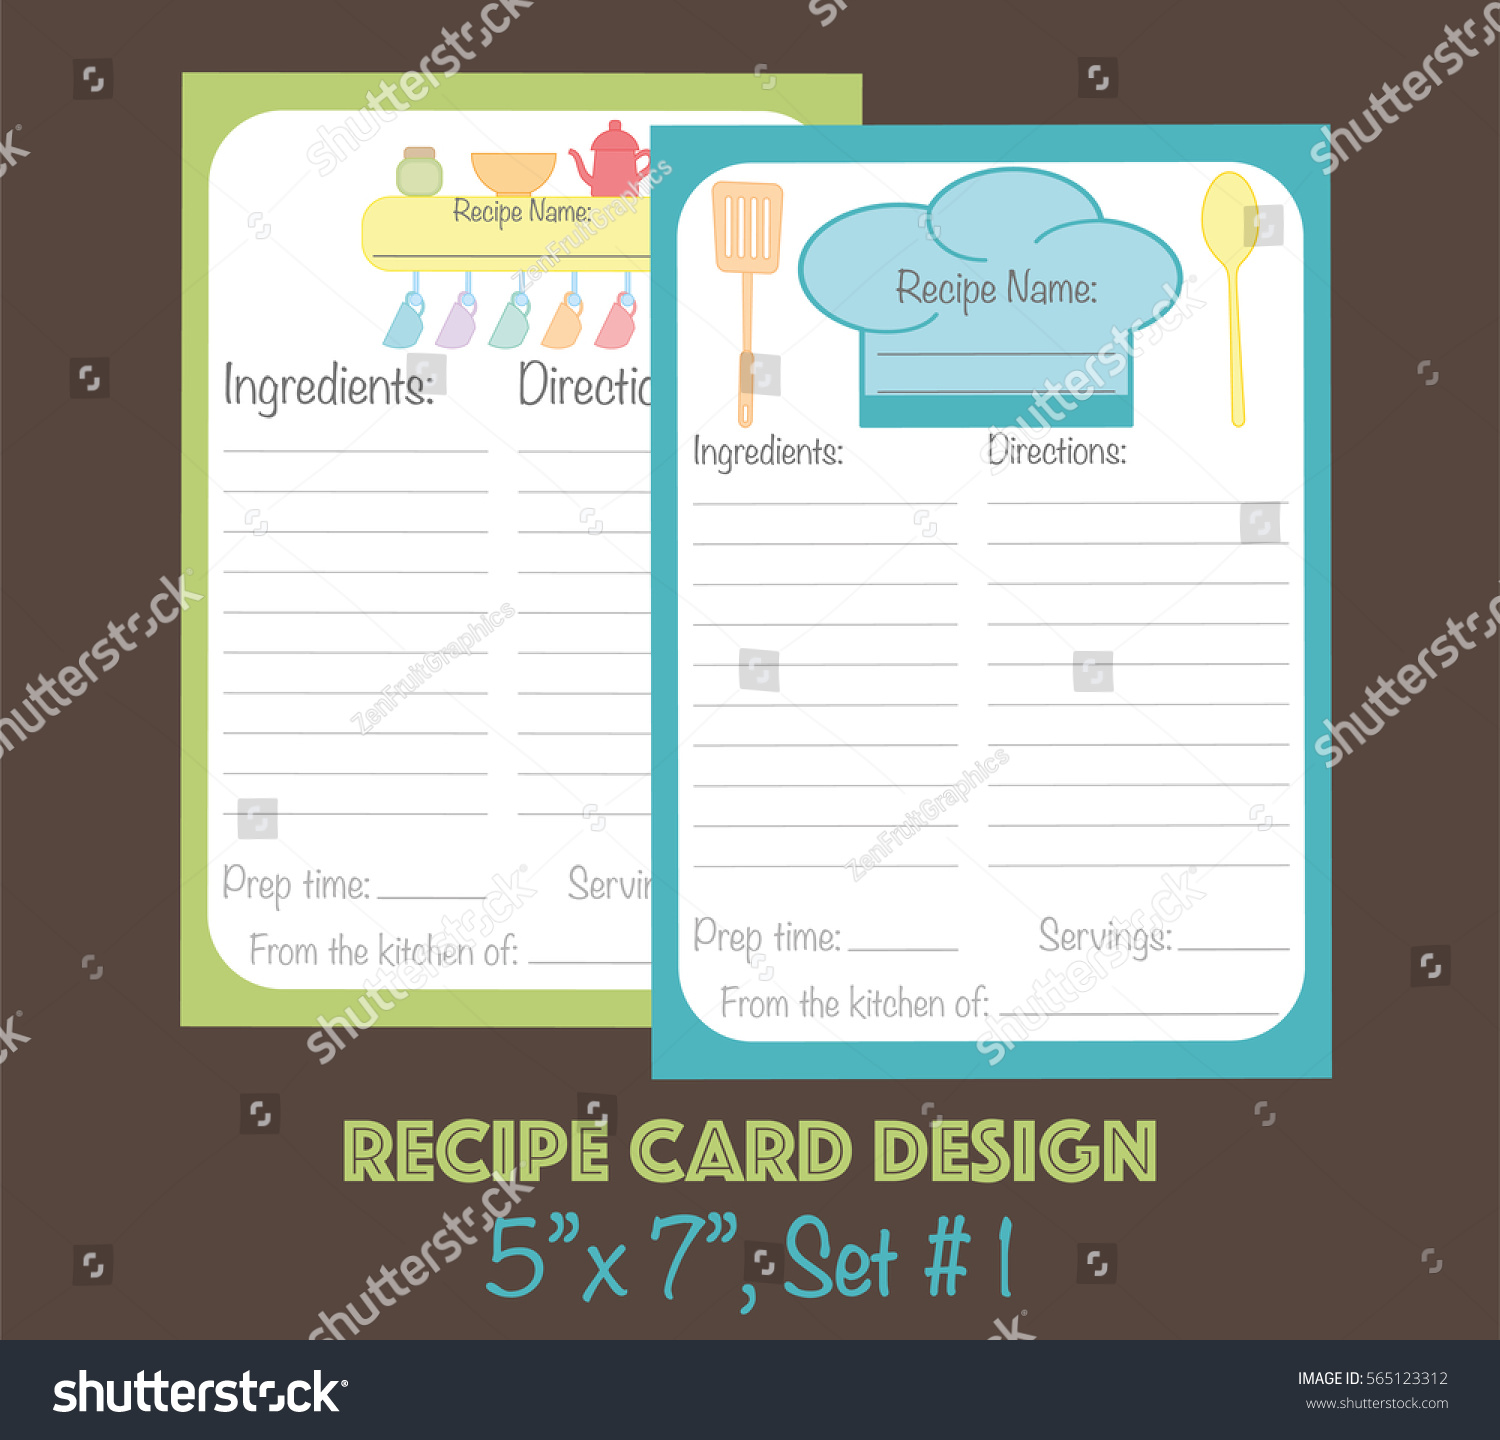 Cute Recipe Cards Vector Card Decorated With Kitchenware Elements